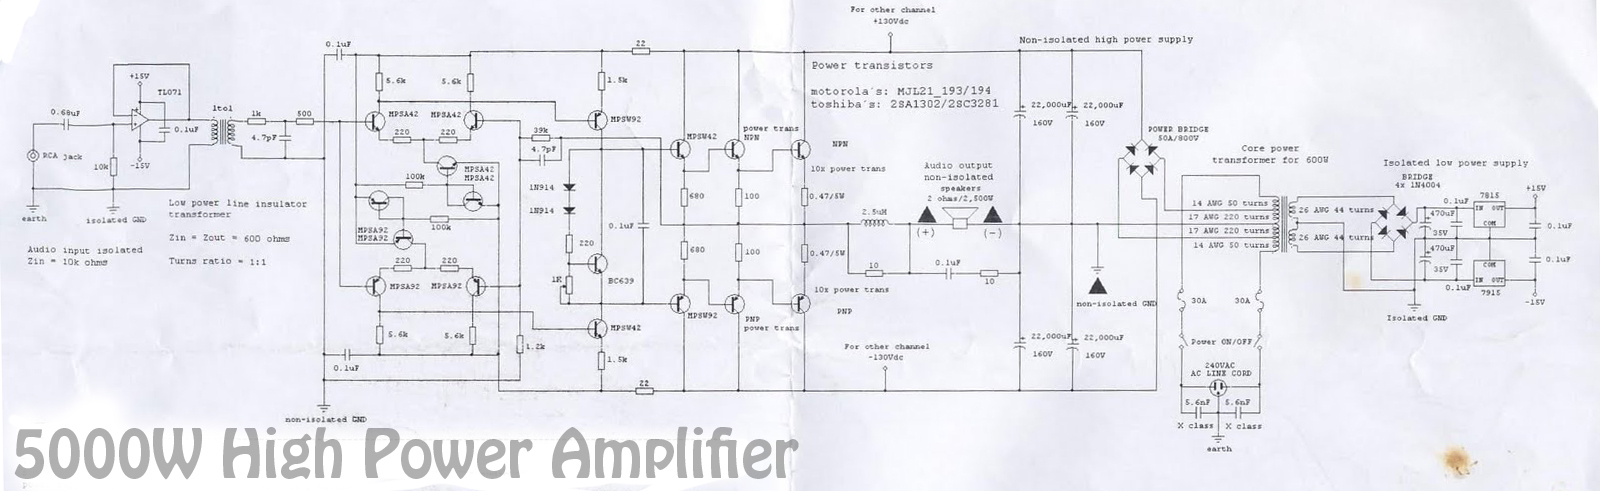 5000 watts high power amplifier schematic subwoofer bass amplifier rh subwooferbass amplifiercircuit blogspot com 5000 watt audio amplifier circuit diagram 5000 watt amplifier circuit diagram pdf